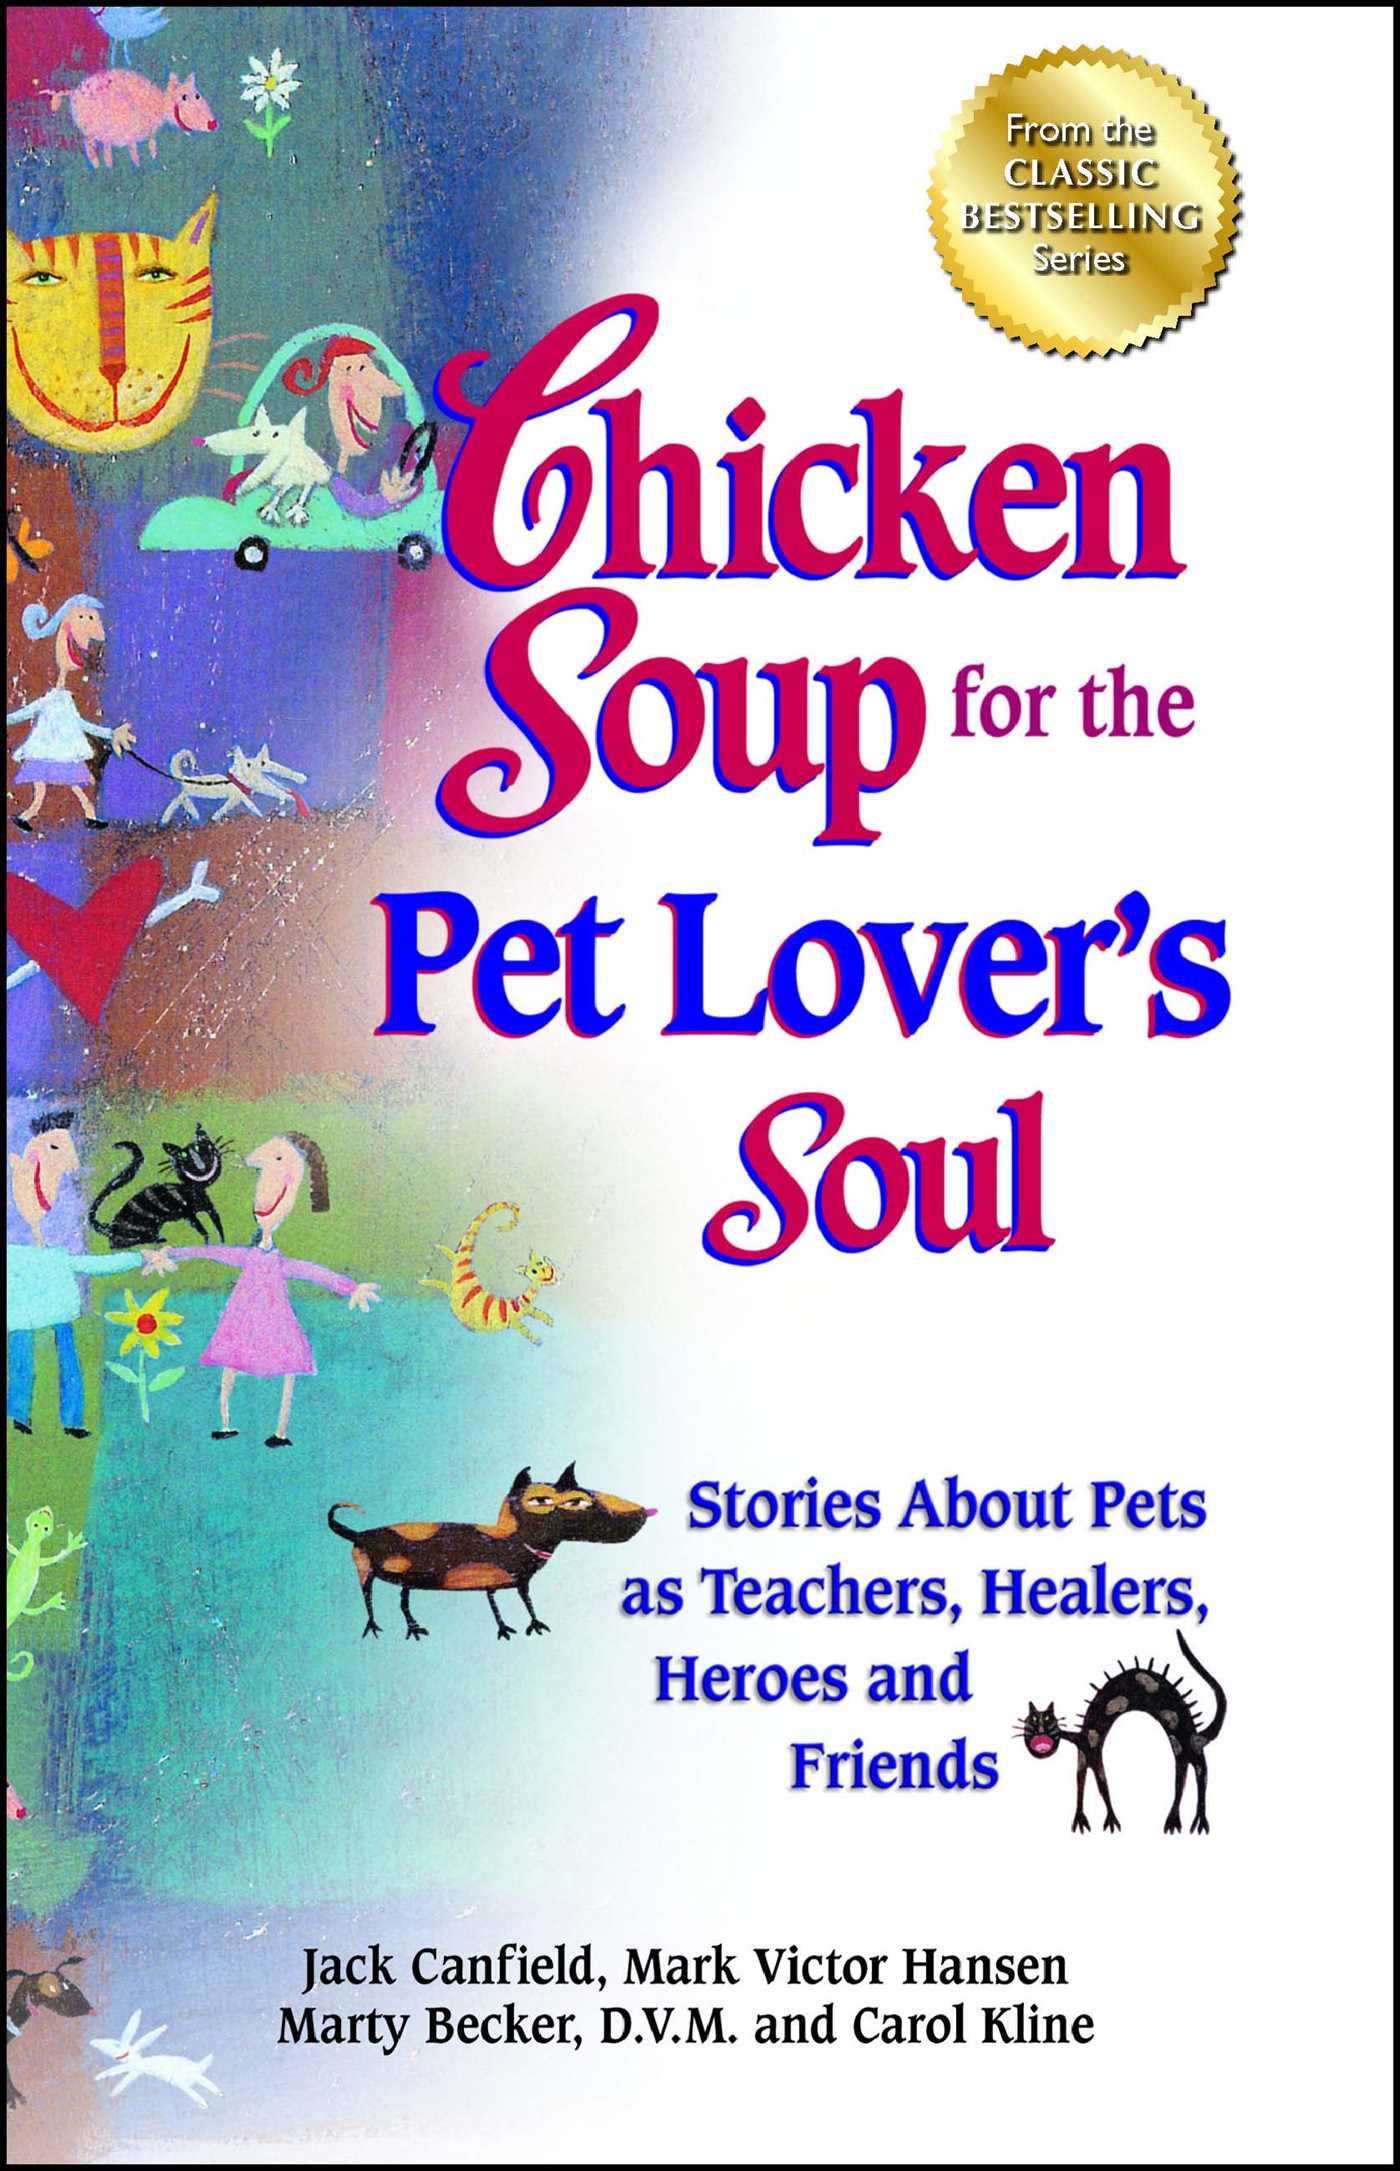 Chicken soup for the pet lovers soul 9781623610555 hr